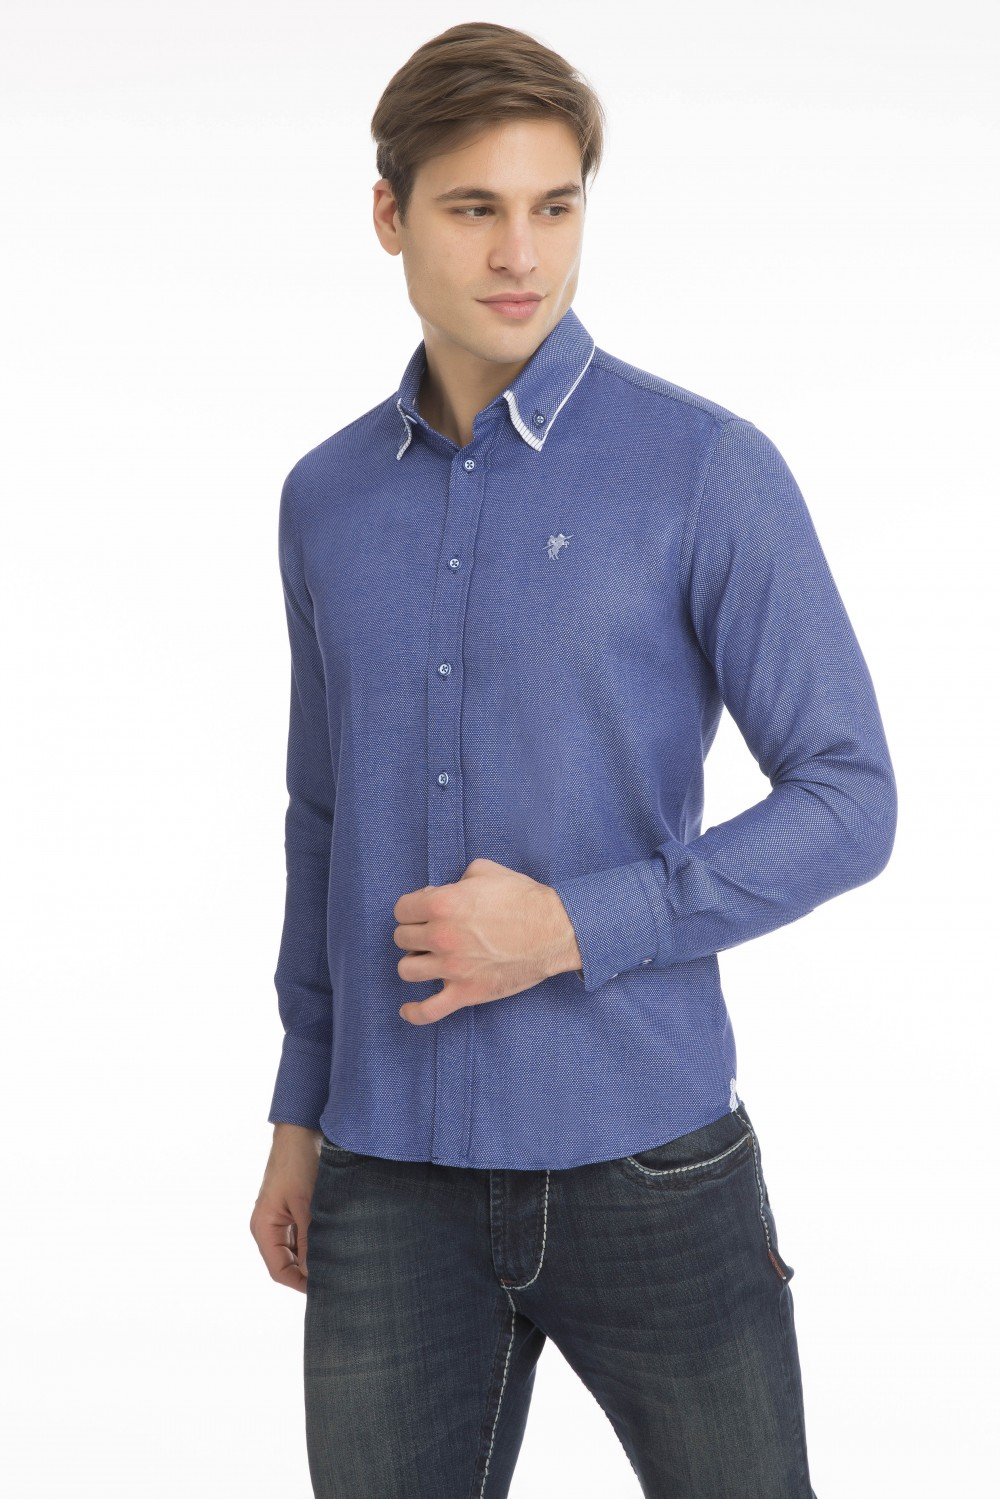 Men's Shirt Double Collar Royal